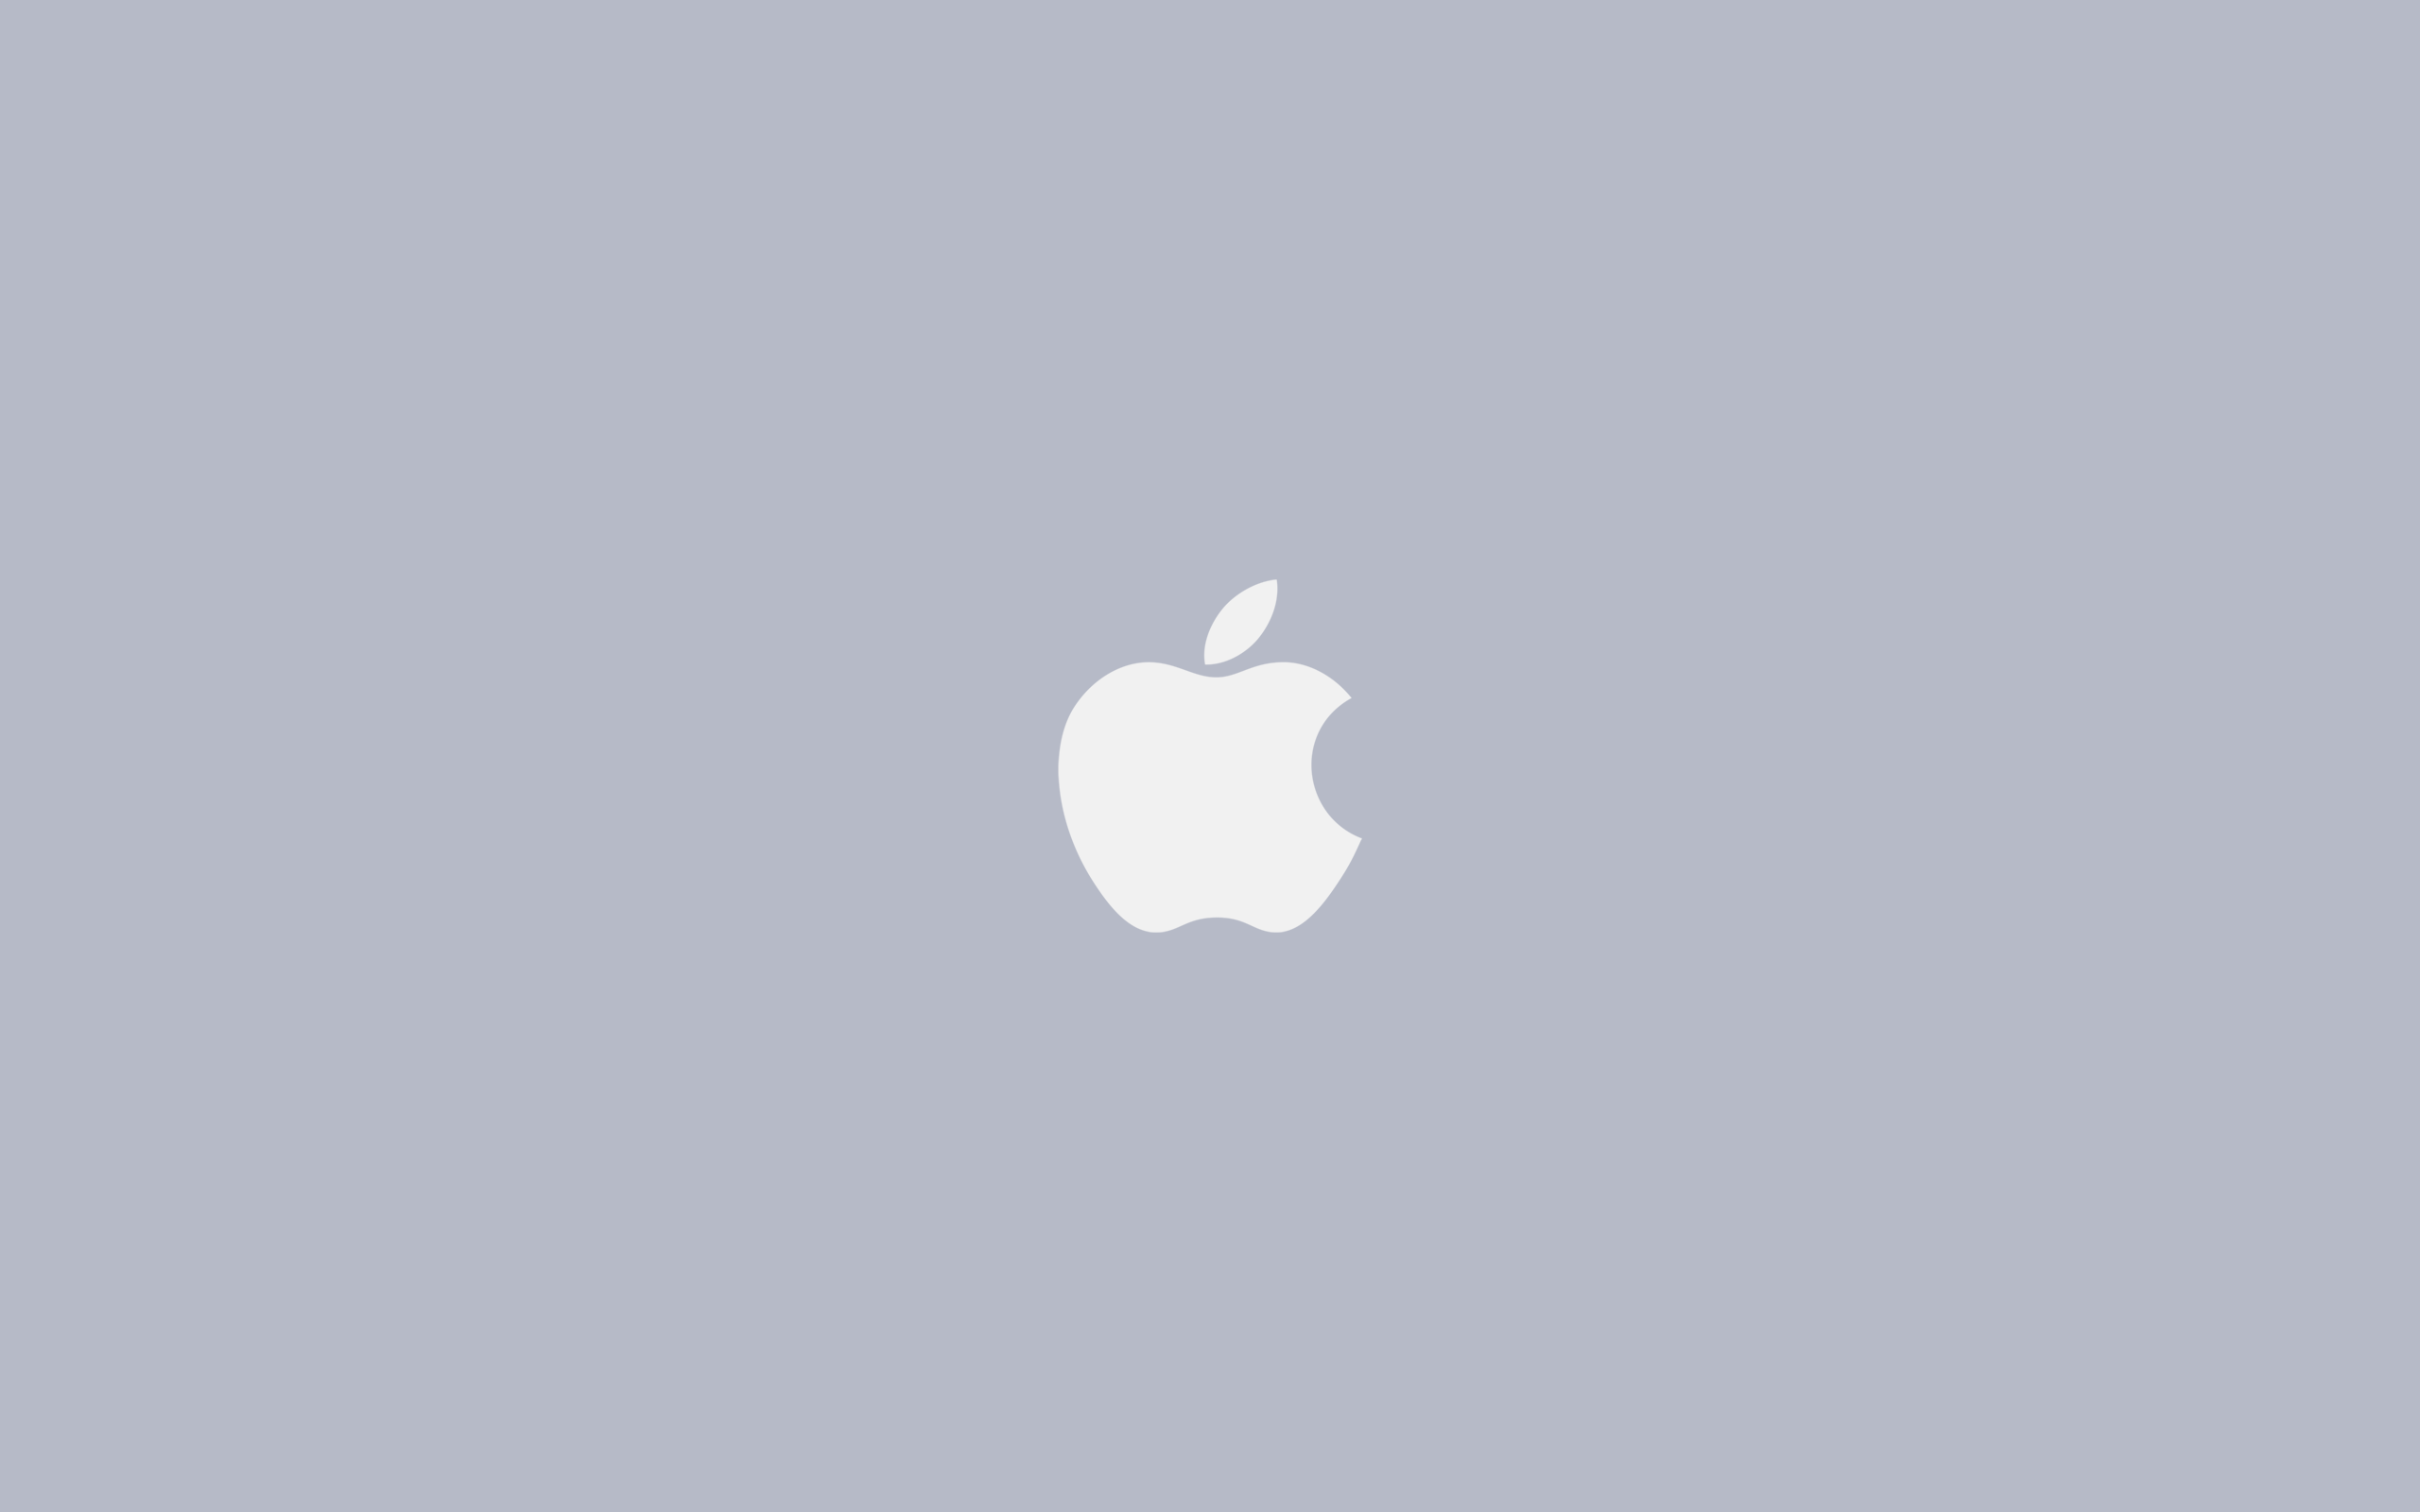 11.13.15 - 2560x1600 Apple Logo Desktop Wallpapers